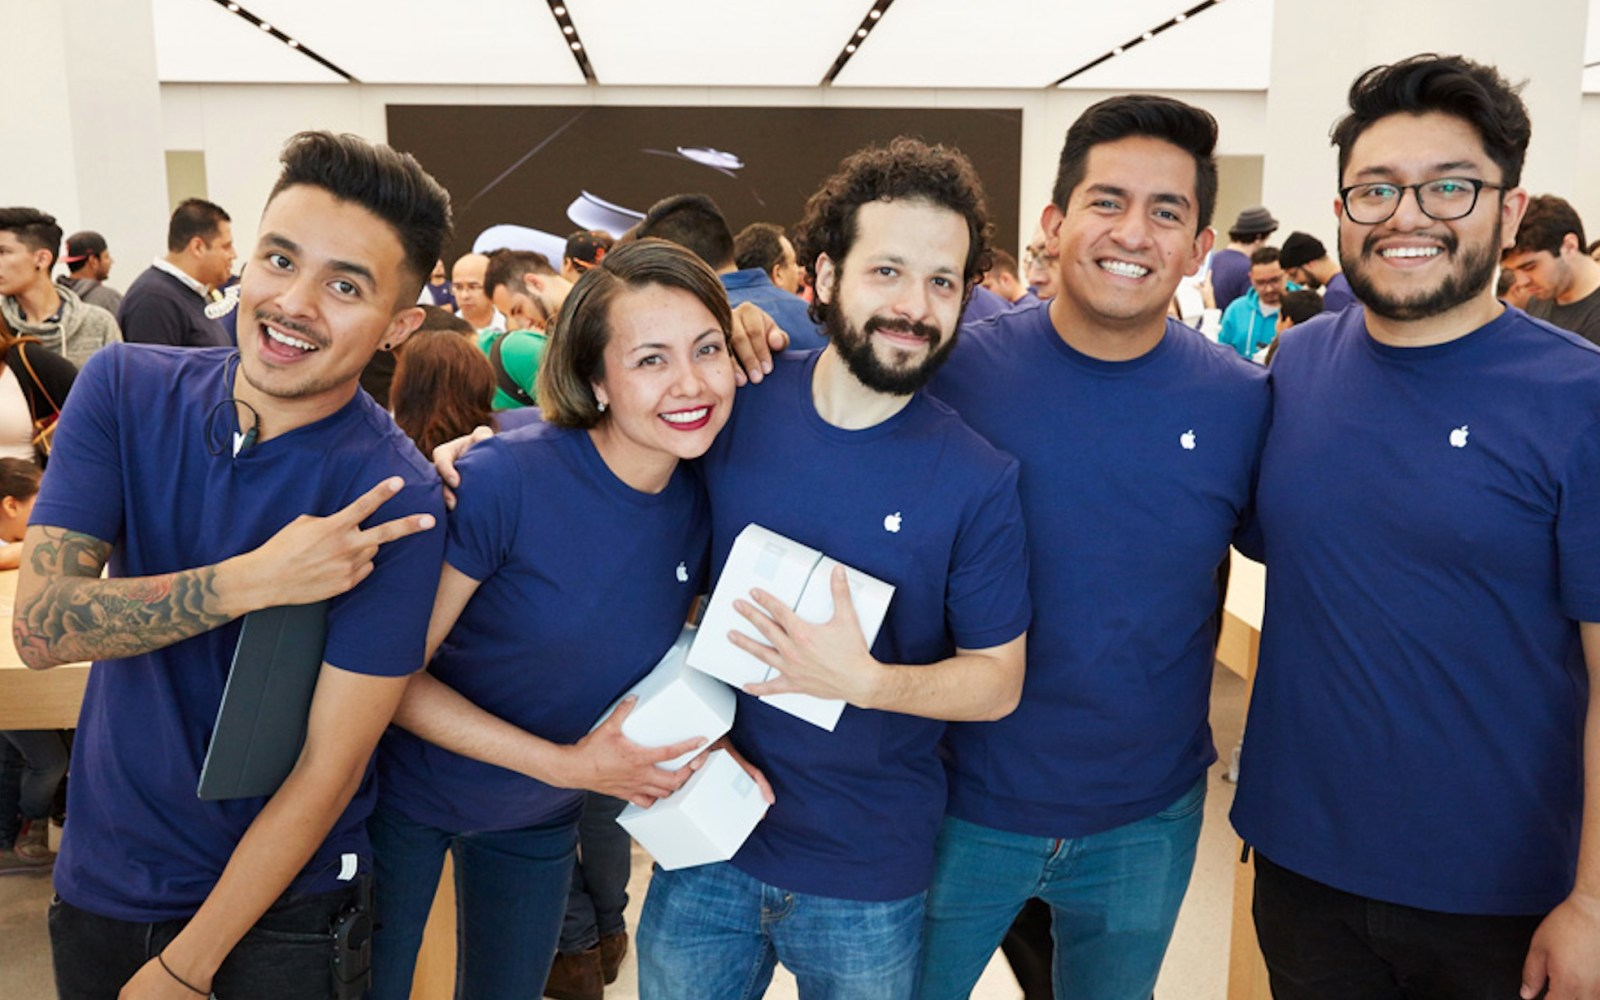 Apple celebrates grand opening of first retail store in Mexico